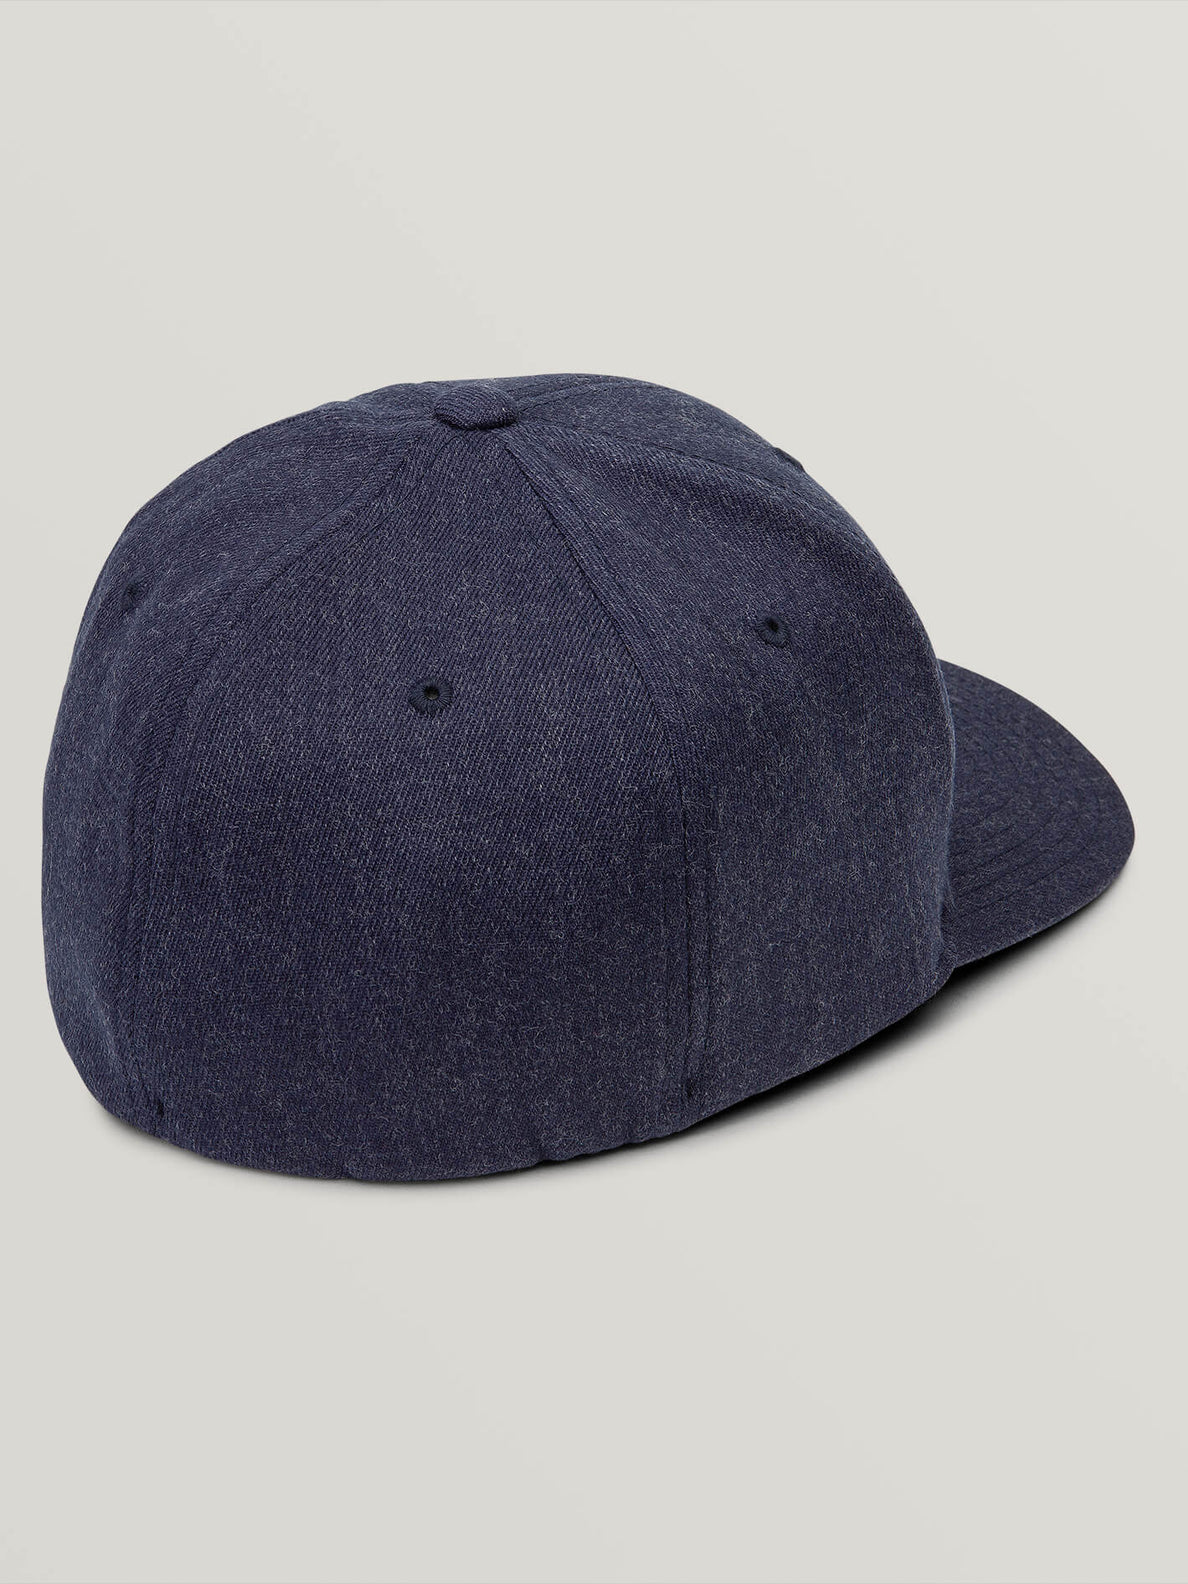 Full Stone Xfit Hat In Navy Heather, Back View